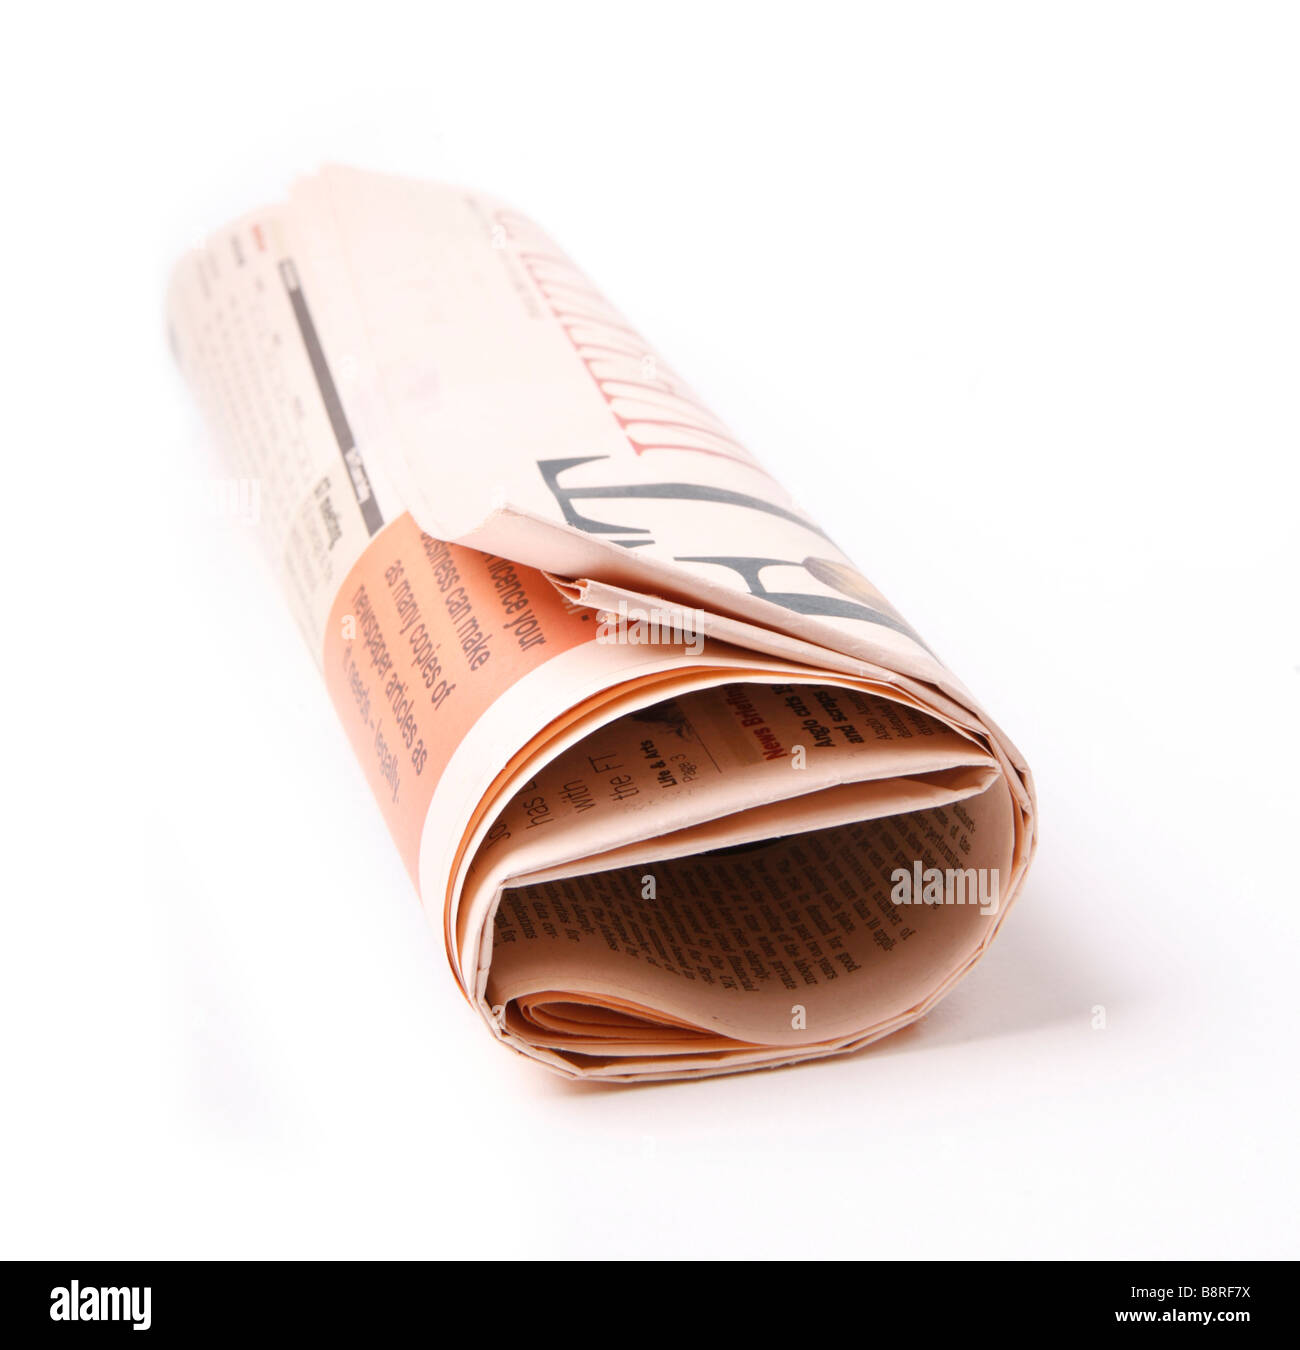 Rolled Up Newspaper Financial Times - Stock Image